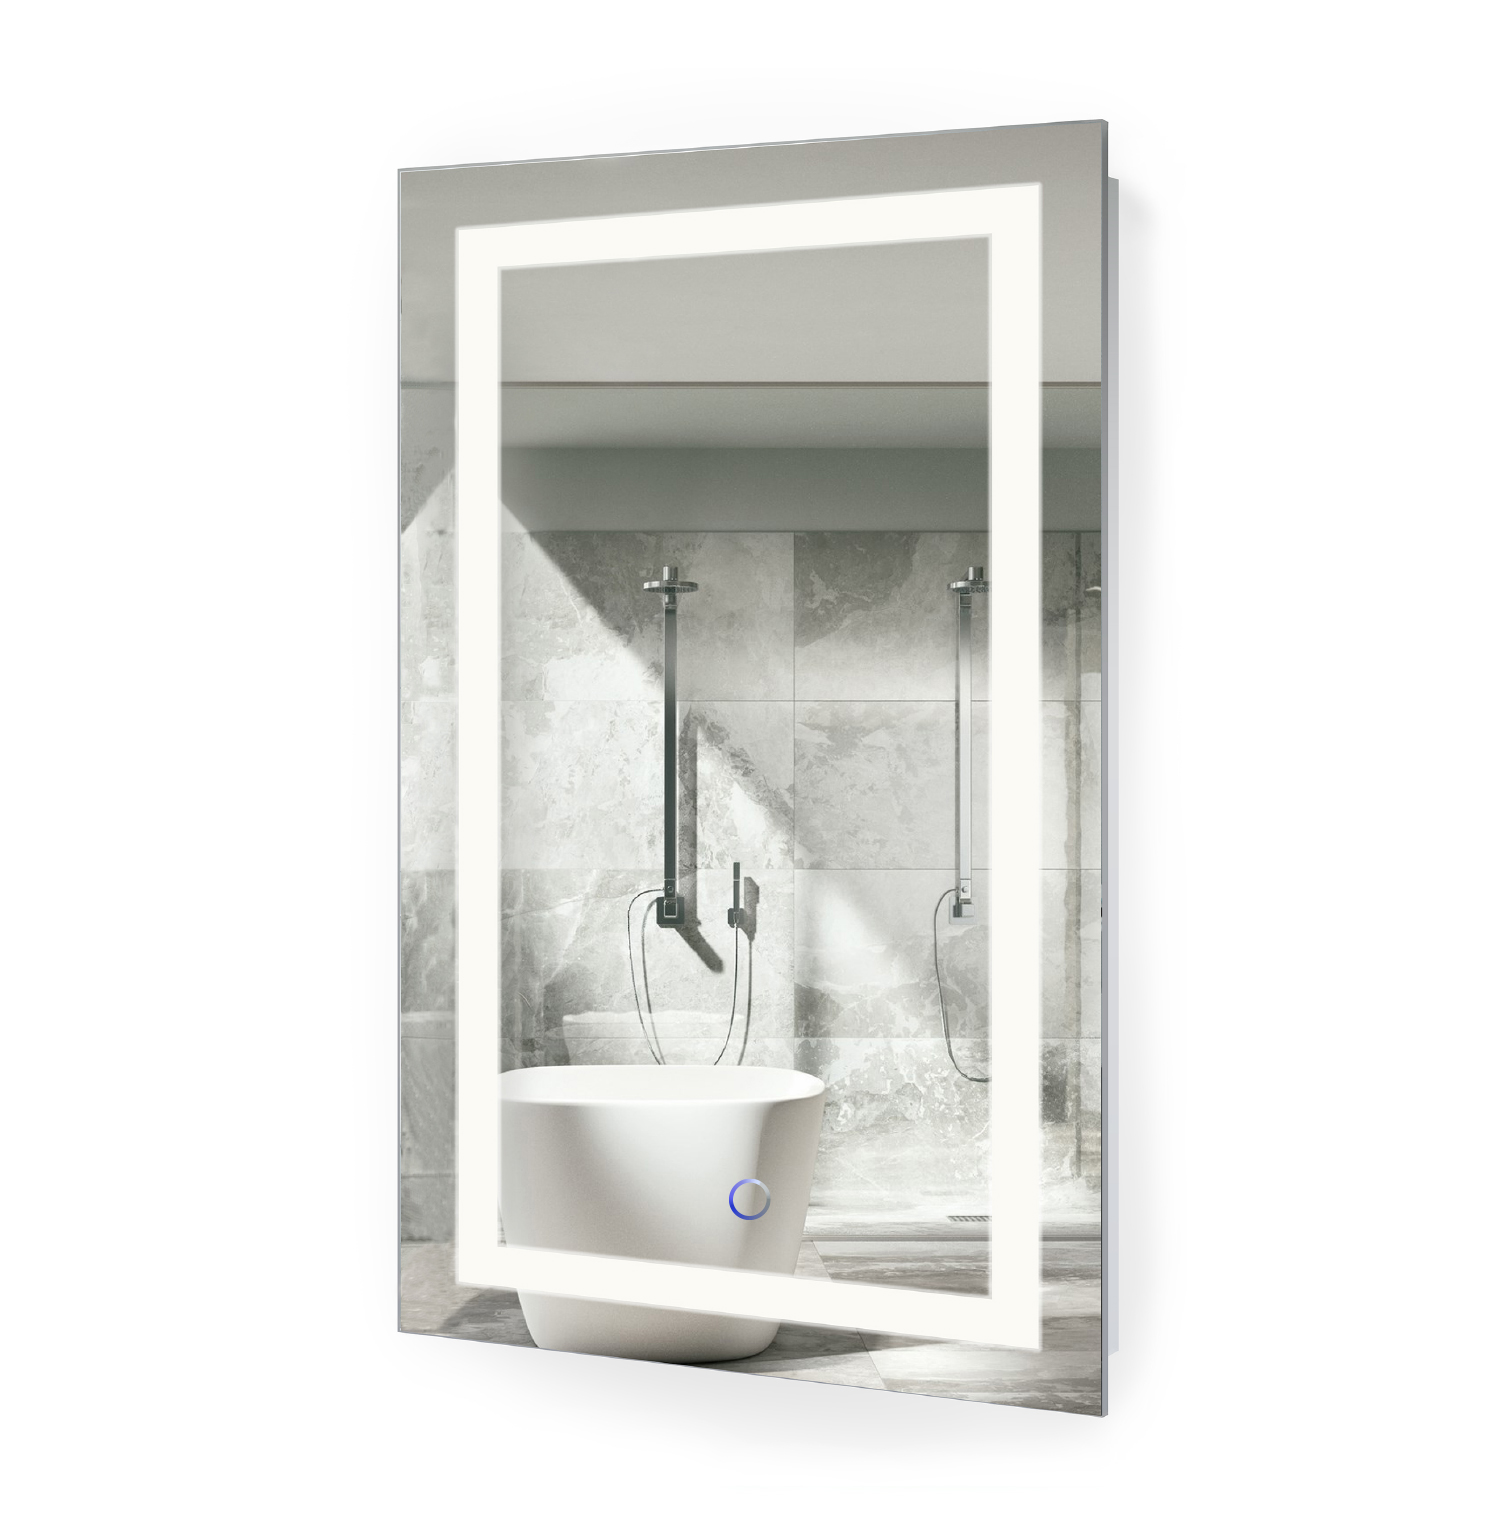 Icon18 LED Vanity Mirror 18″x30″ Bathroom Lighted Mirror With Dimmer & Defogger